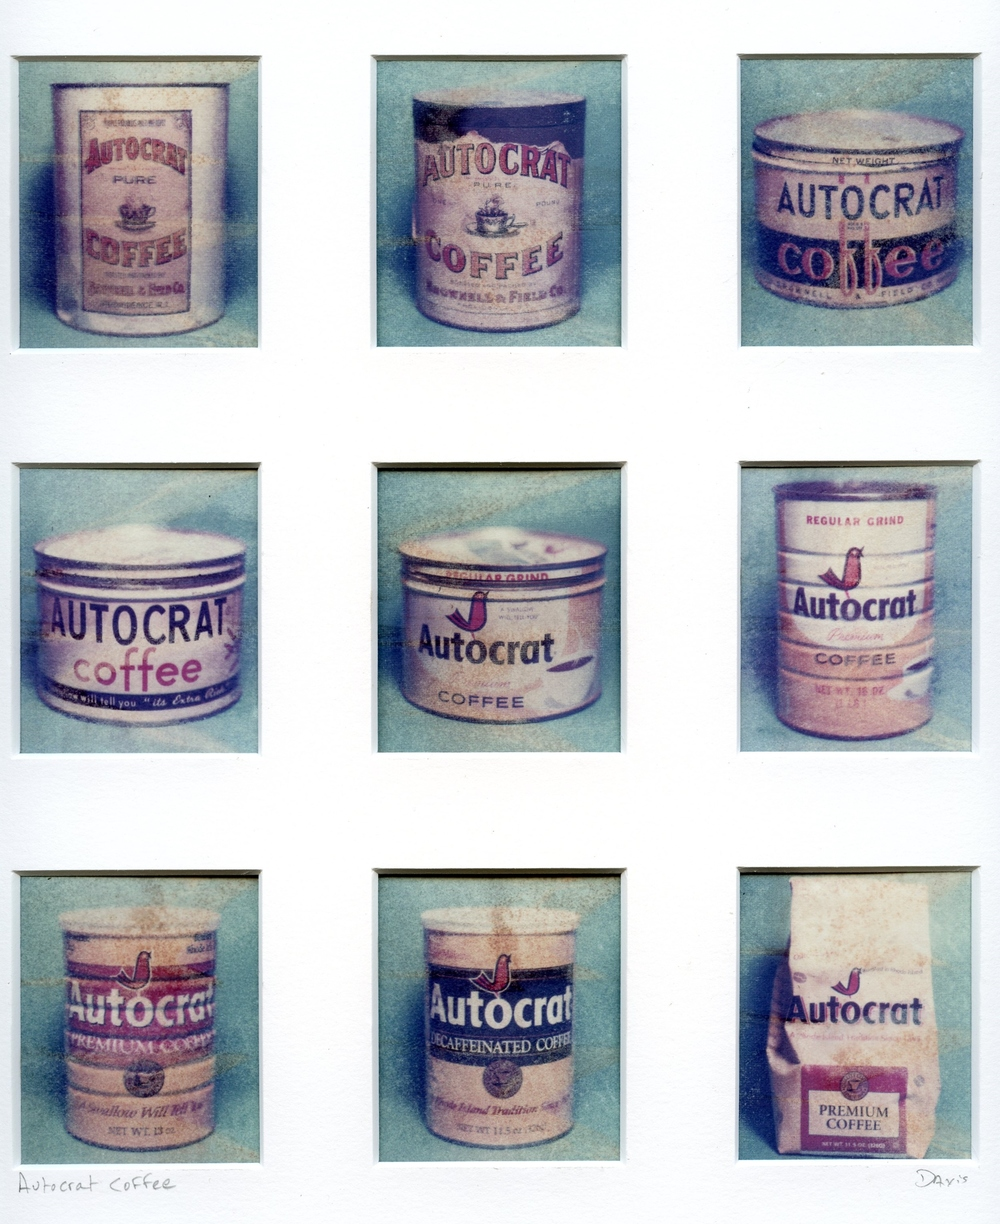 Autocrat Coffee - Polaroid transfers